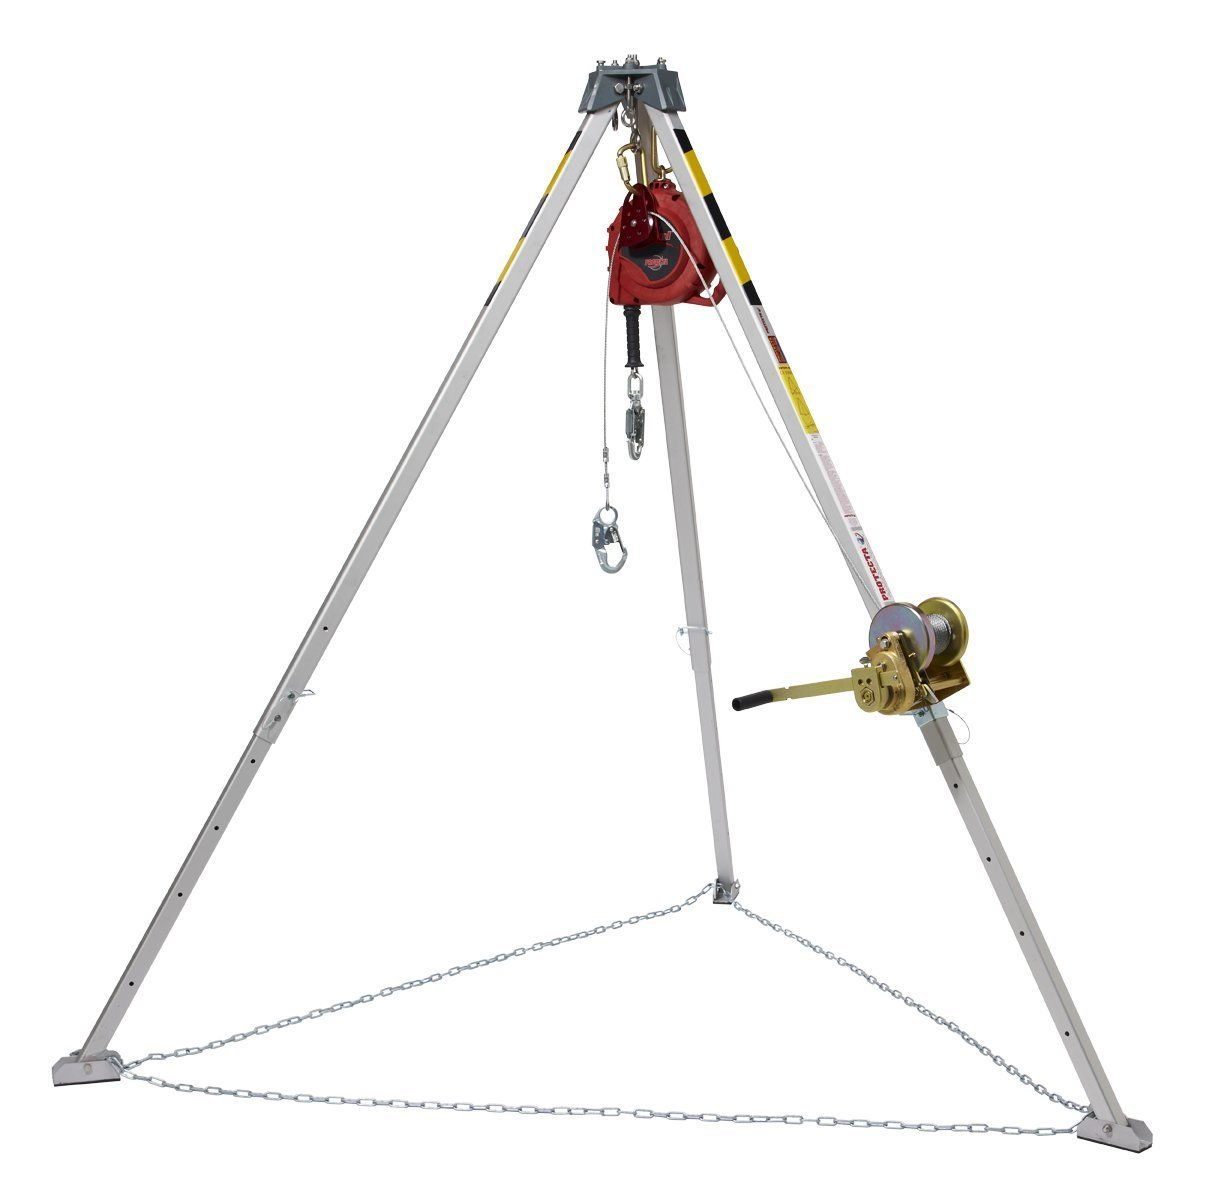 Buy Protecta Pro Ak105a Confined Space Aluminum Tripod 8